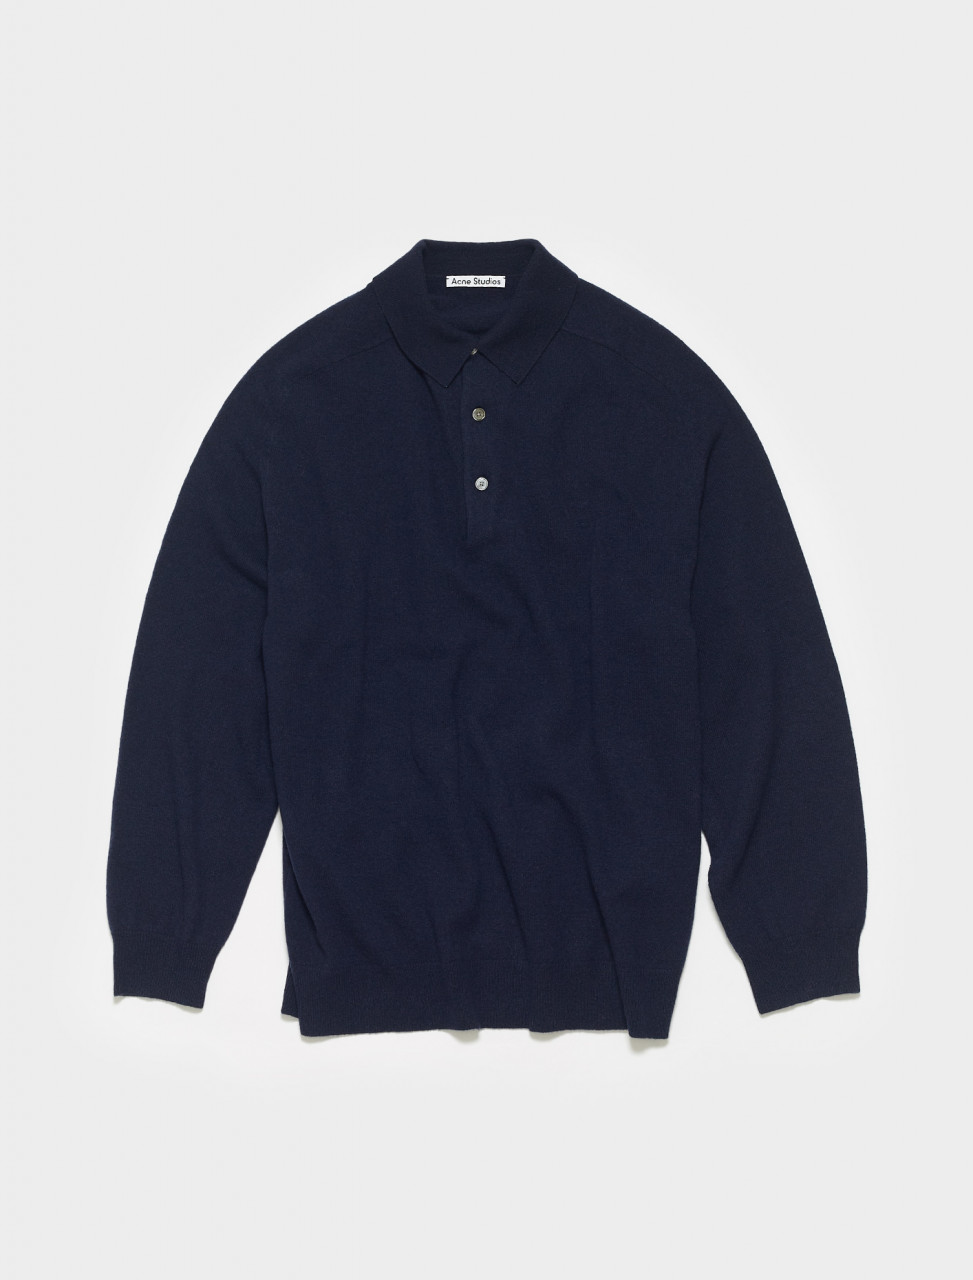 B60174-BG3 ACNE STUDIOS KOPA LONG SLEEVE POLO IN NAVY